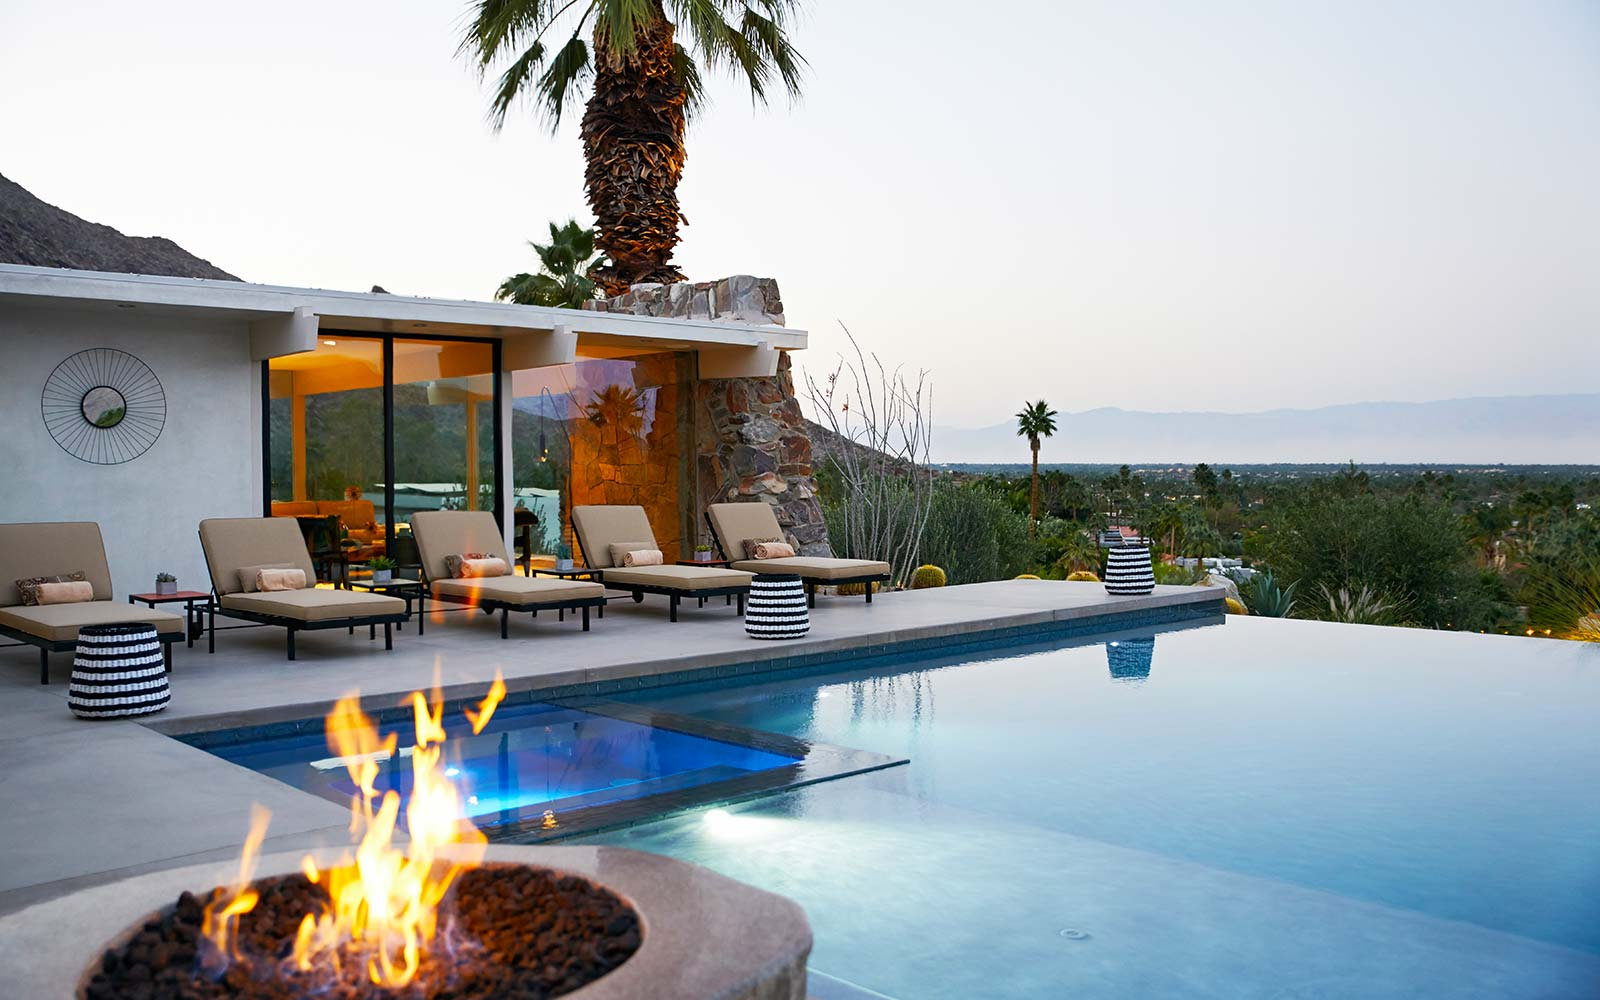 This Hillside Villa in Palm Springs Is the Ultimate Movie Star Getaway